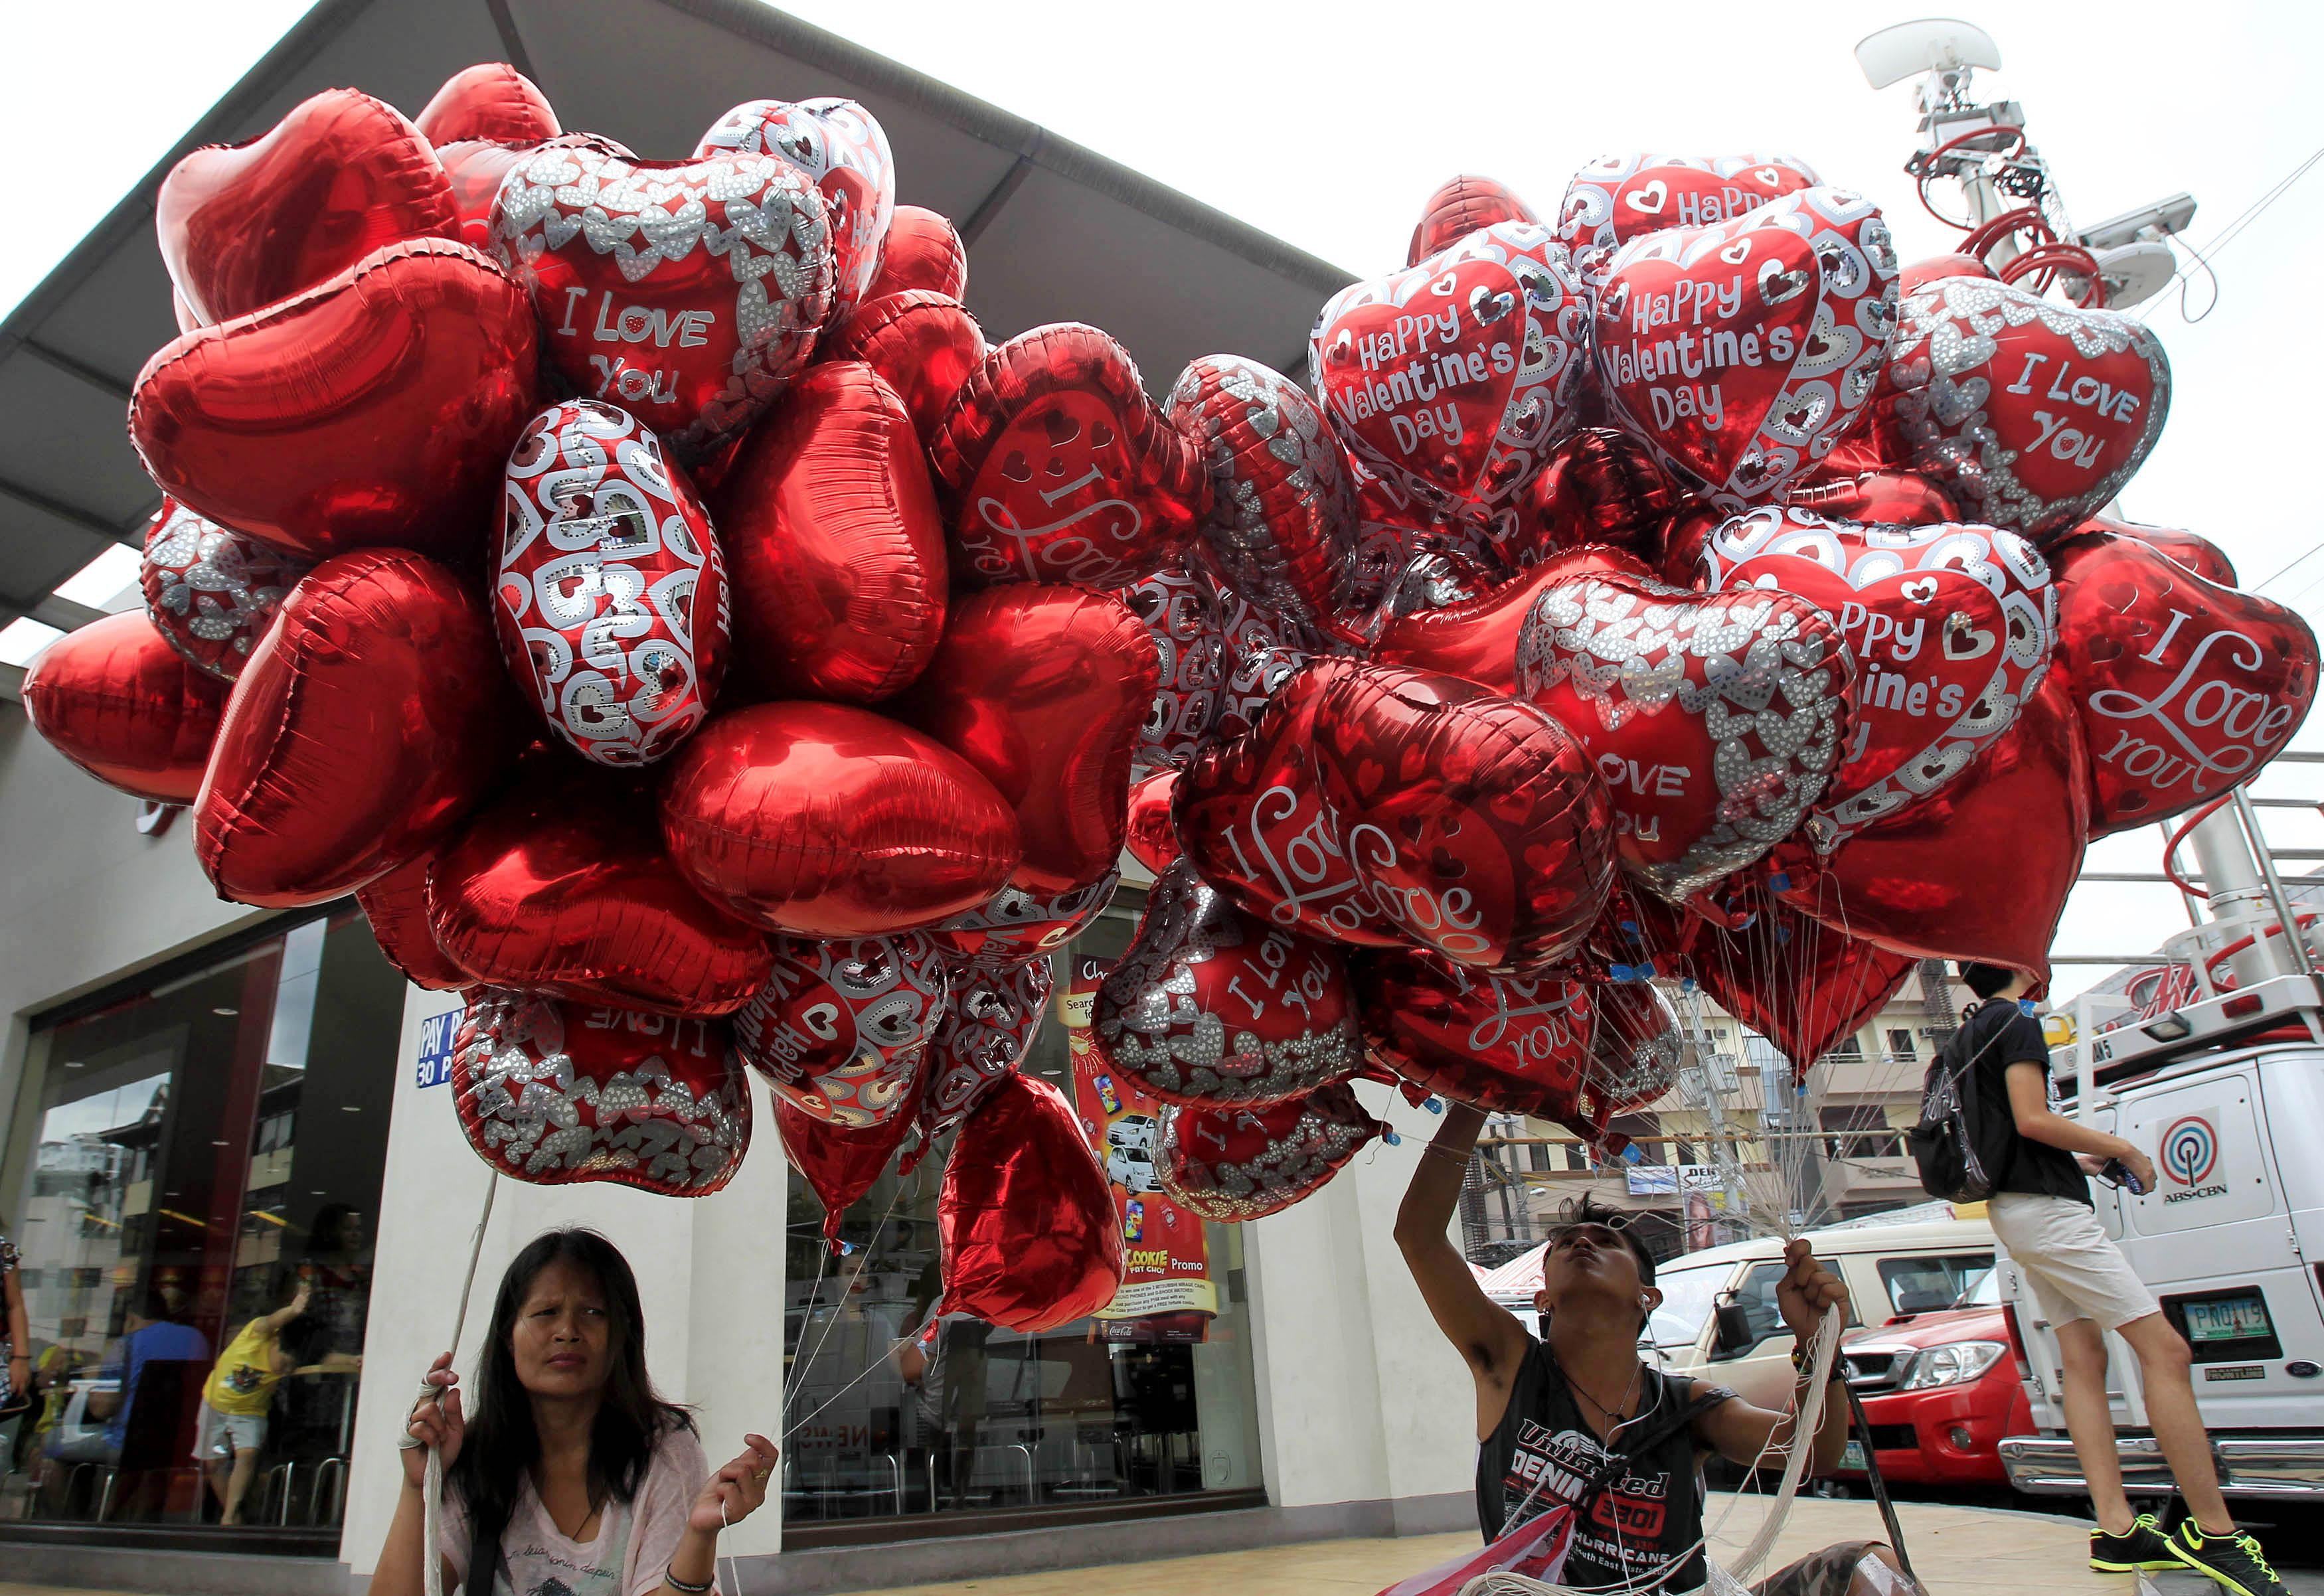 Valentines day card ideas 2016 10 do it yourself designs for your street vendors sell heart shaped balloons on the eve of valentines day in manila feb13 2015 photo reuters solutioingenieria Image collections